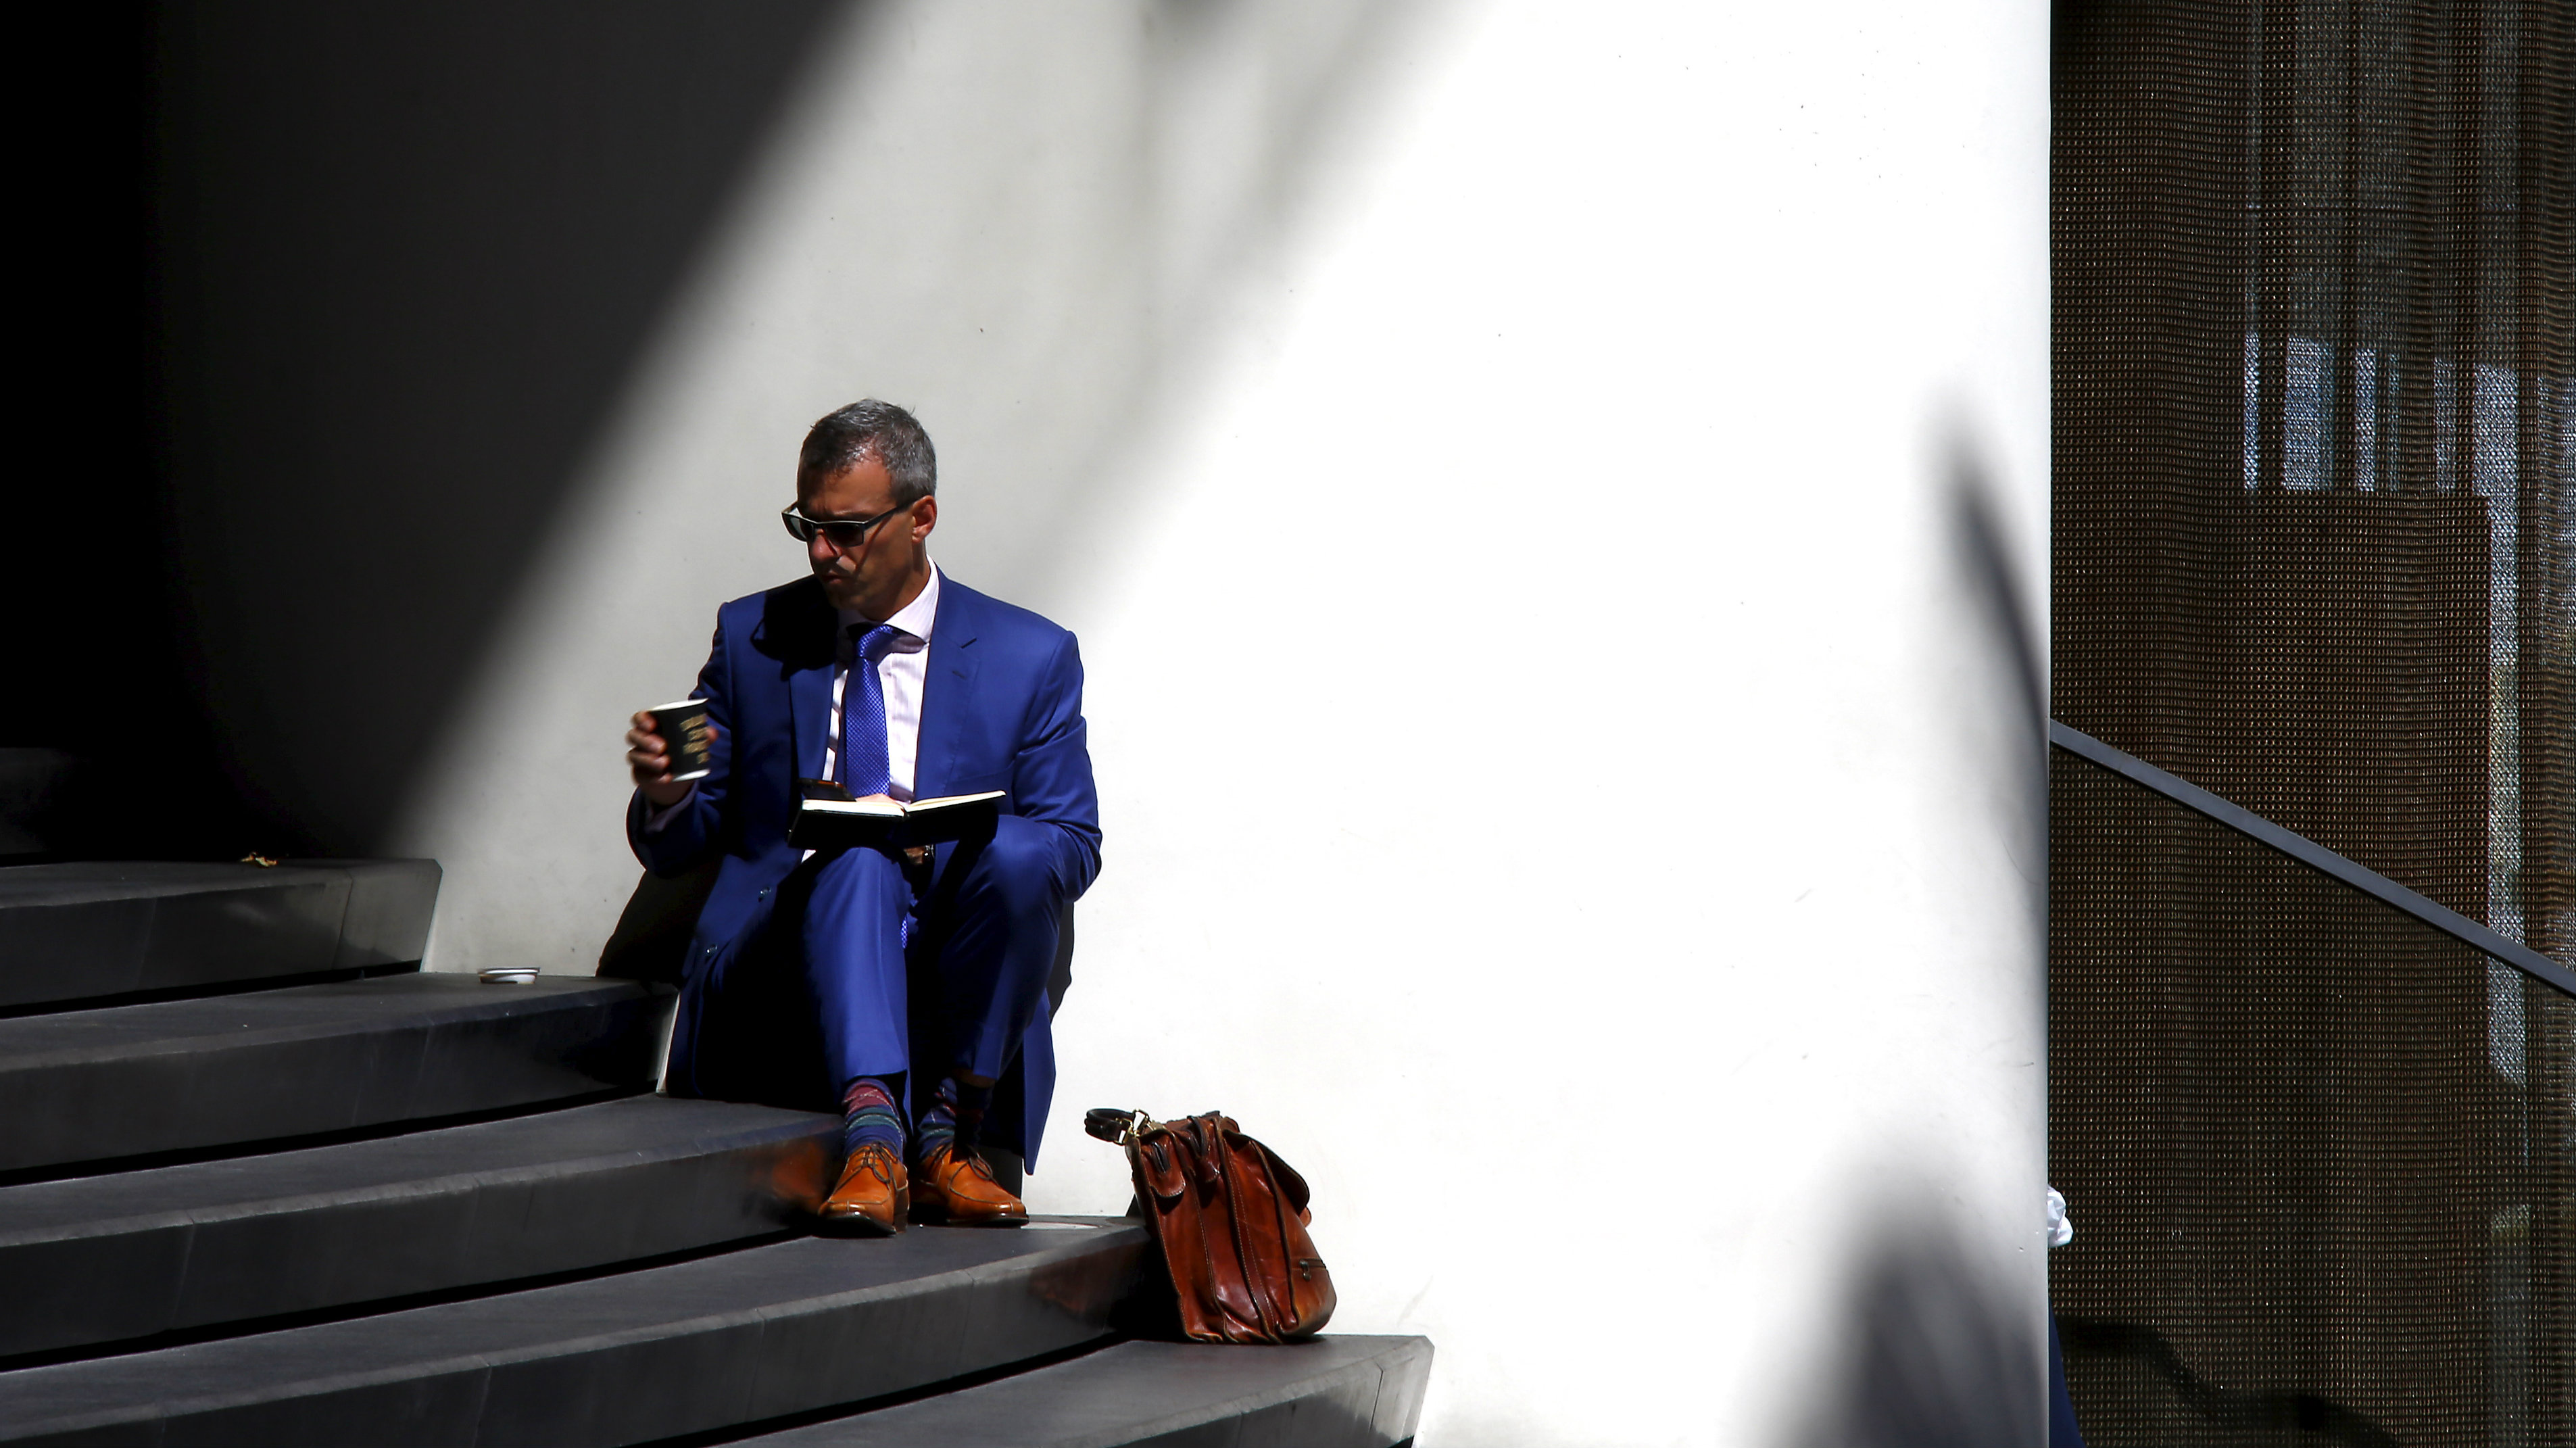 A businessman drinks coffee as he sits on the steps of an office building in central Sydney, Australia, March 23, 2016. Australian job advertisements in newspapers and on the Internet inched ahead in March, a potential sign demand for labour had peaked after a very strong 2015. Picture taken March 23, 2016. REUTERS/David Gray